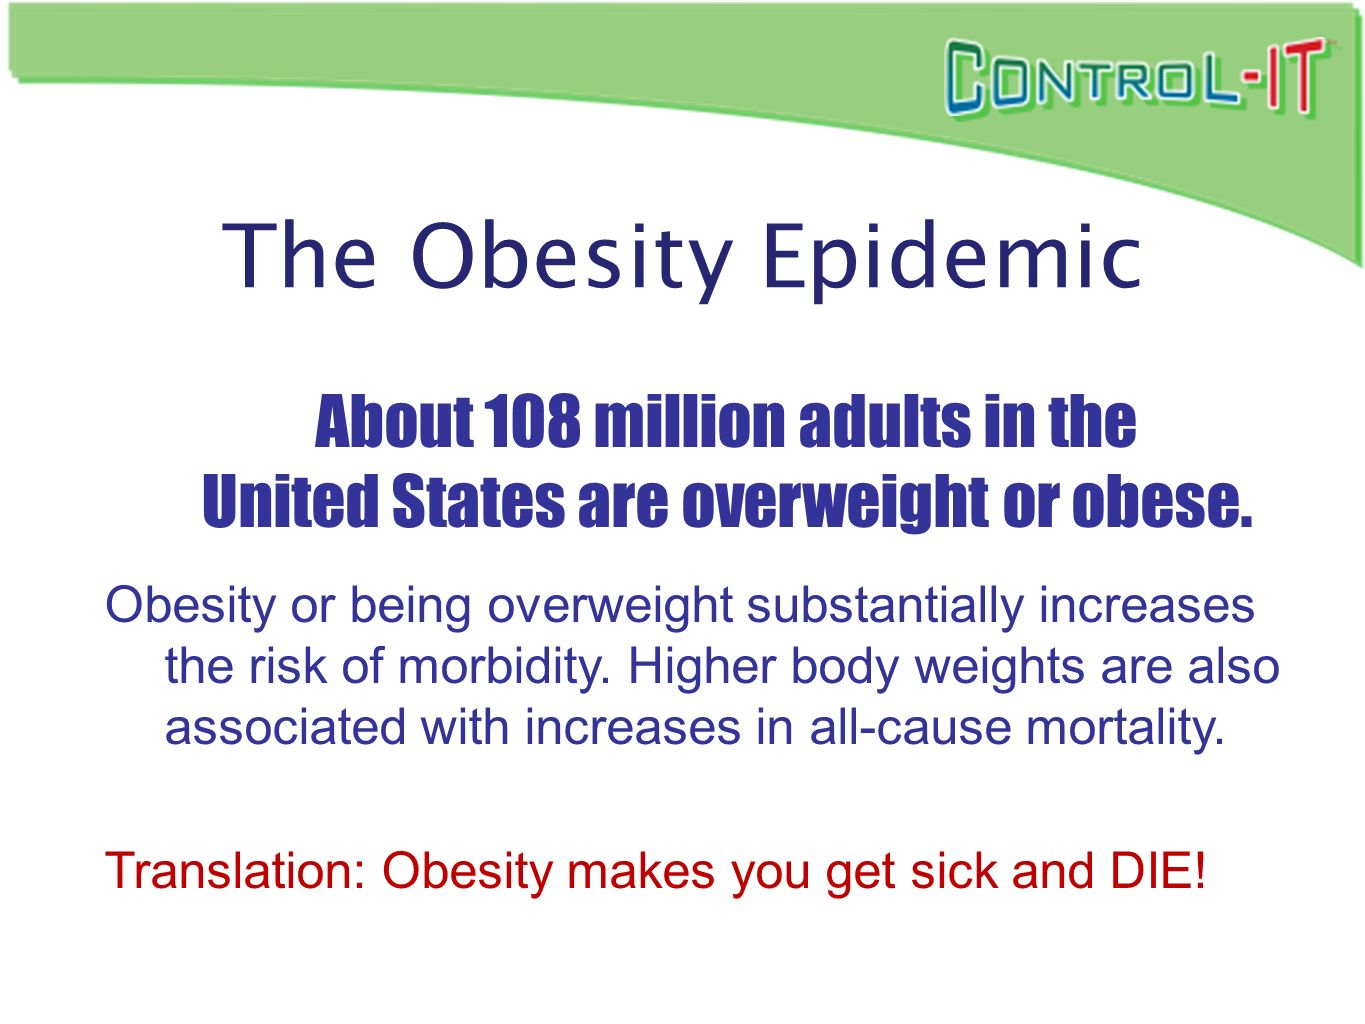 About 108 million adults in the United States are overweight or obese.